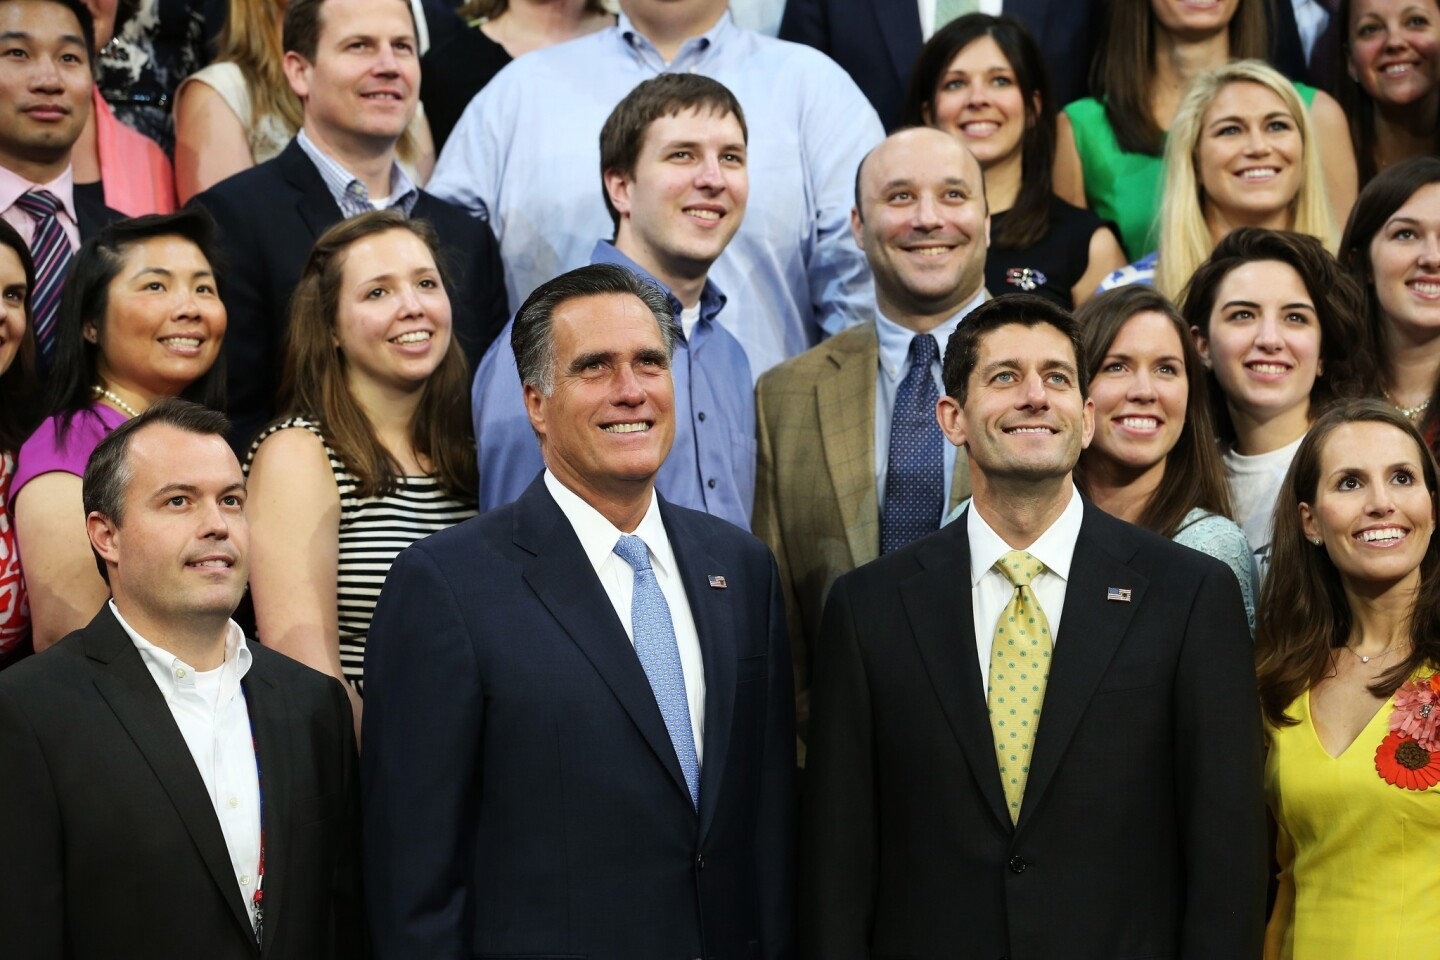 Mitt Romney, Paul Ryan and their campaign staff